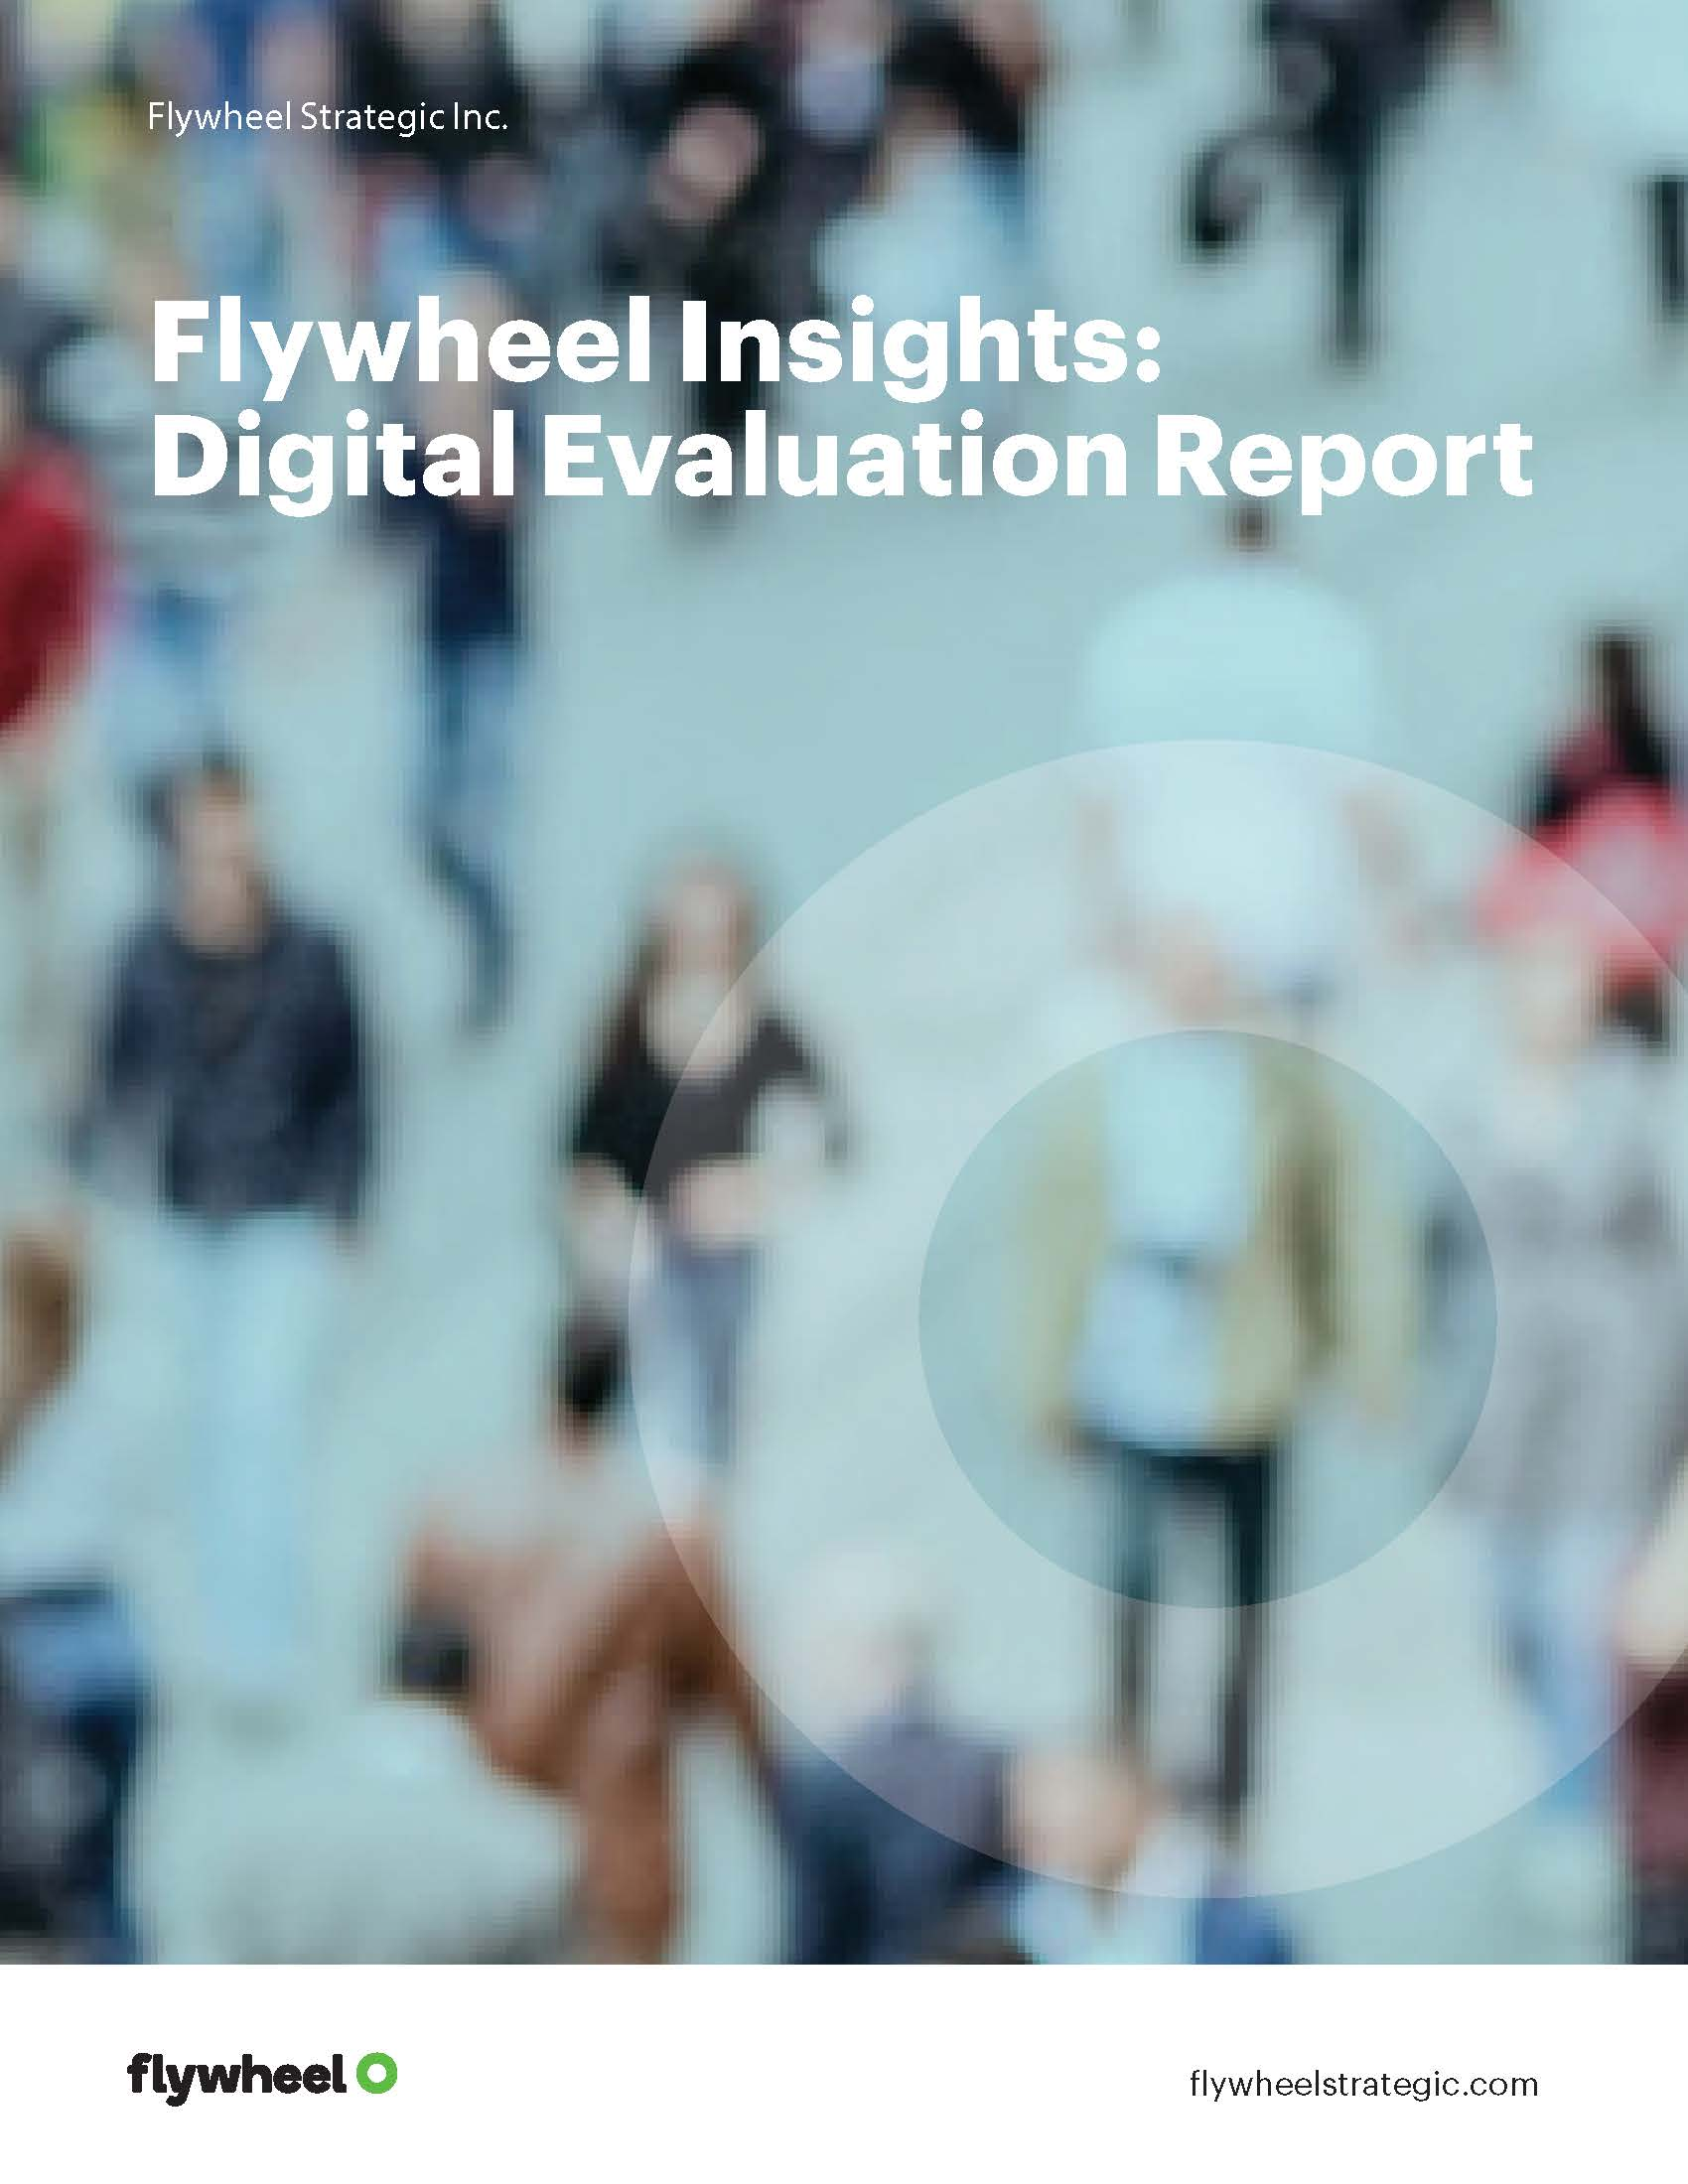 Cover page of Flywheel insights report